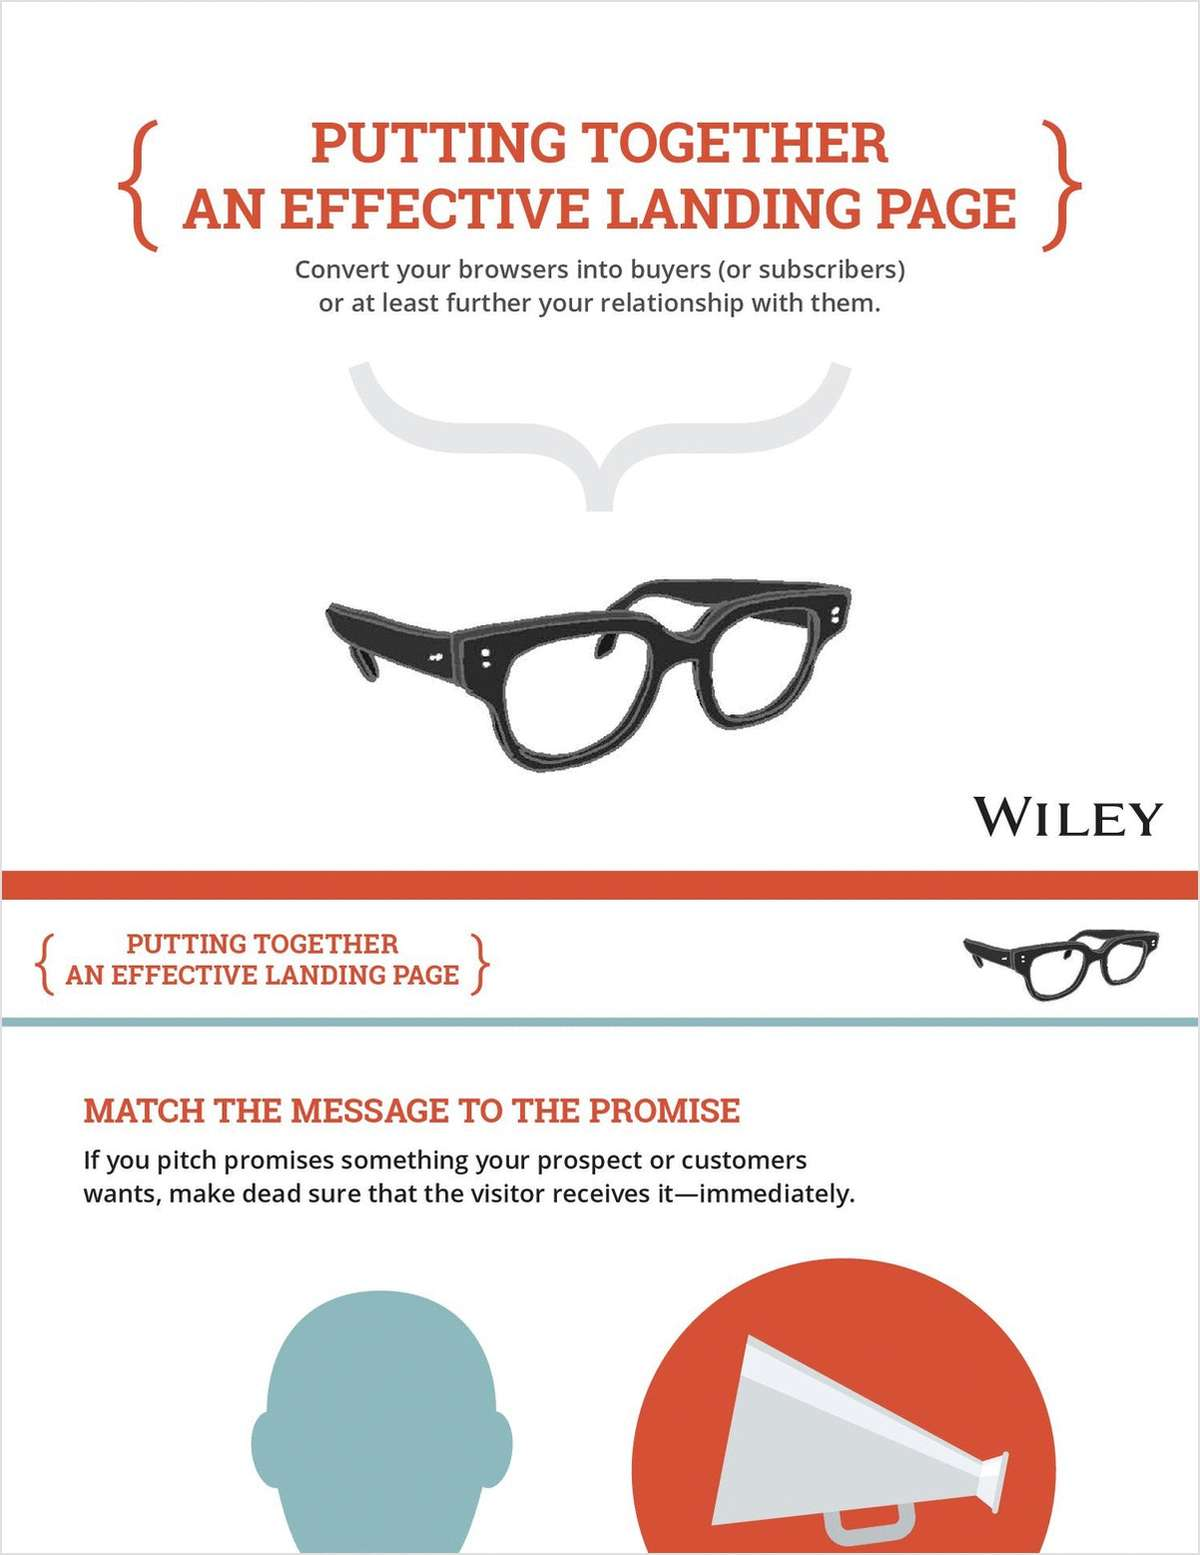 Putting Together an Effective Landing Page